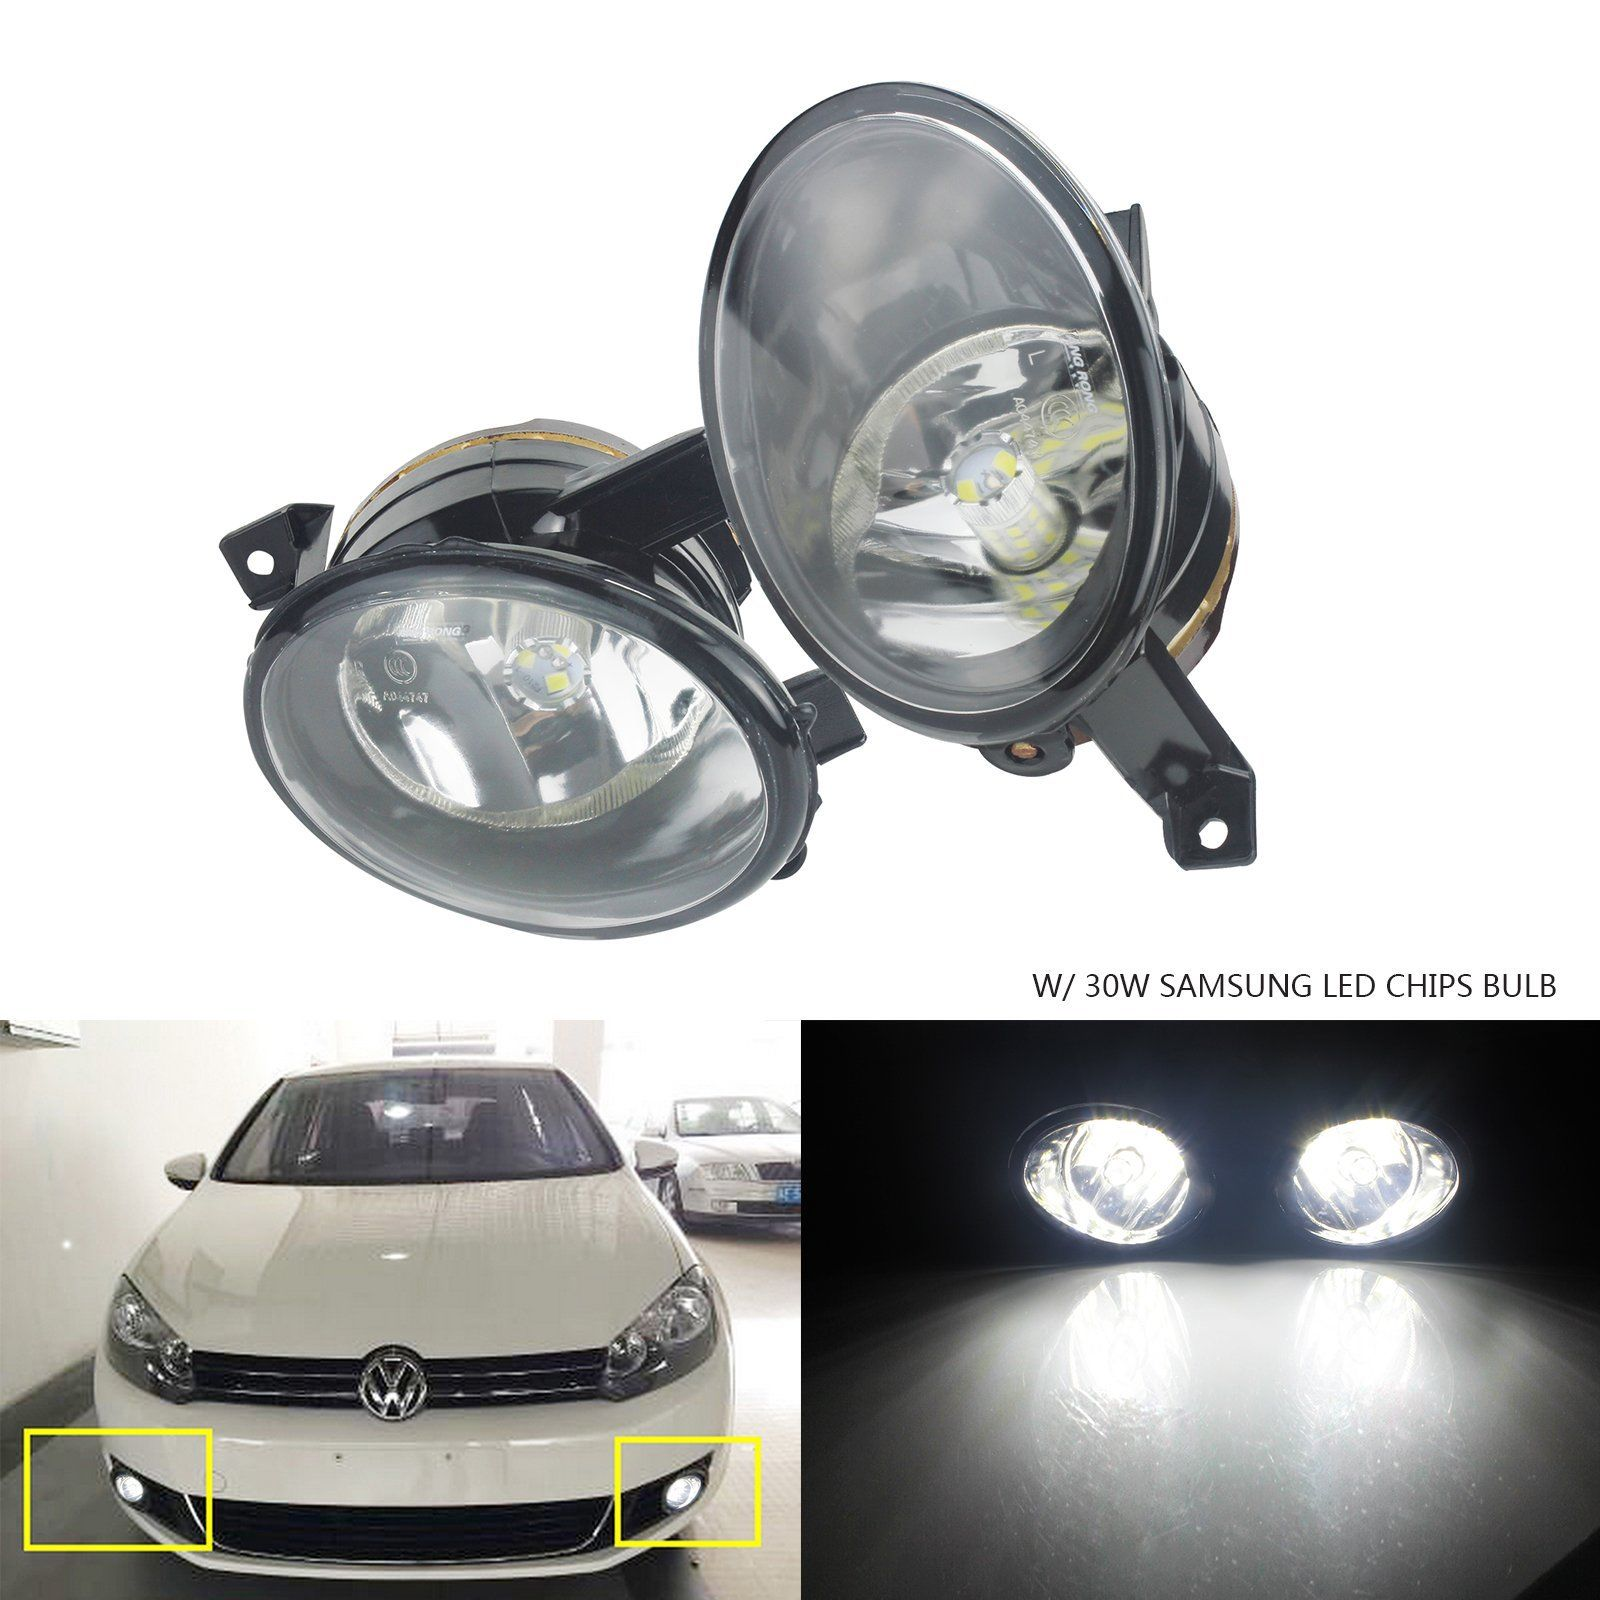 ANGRONG 2 x Front Fog light Lamp W 30W SAMSUNG LED Bulbs L R For VW